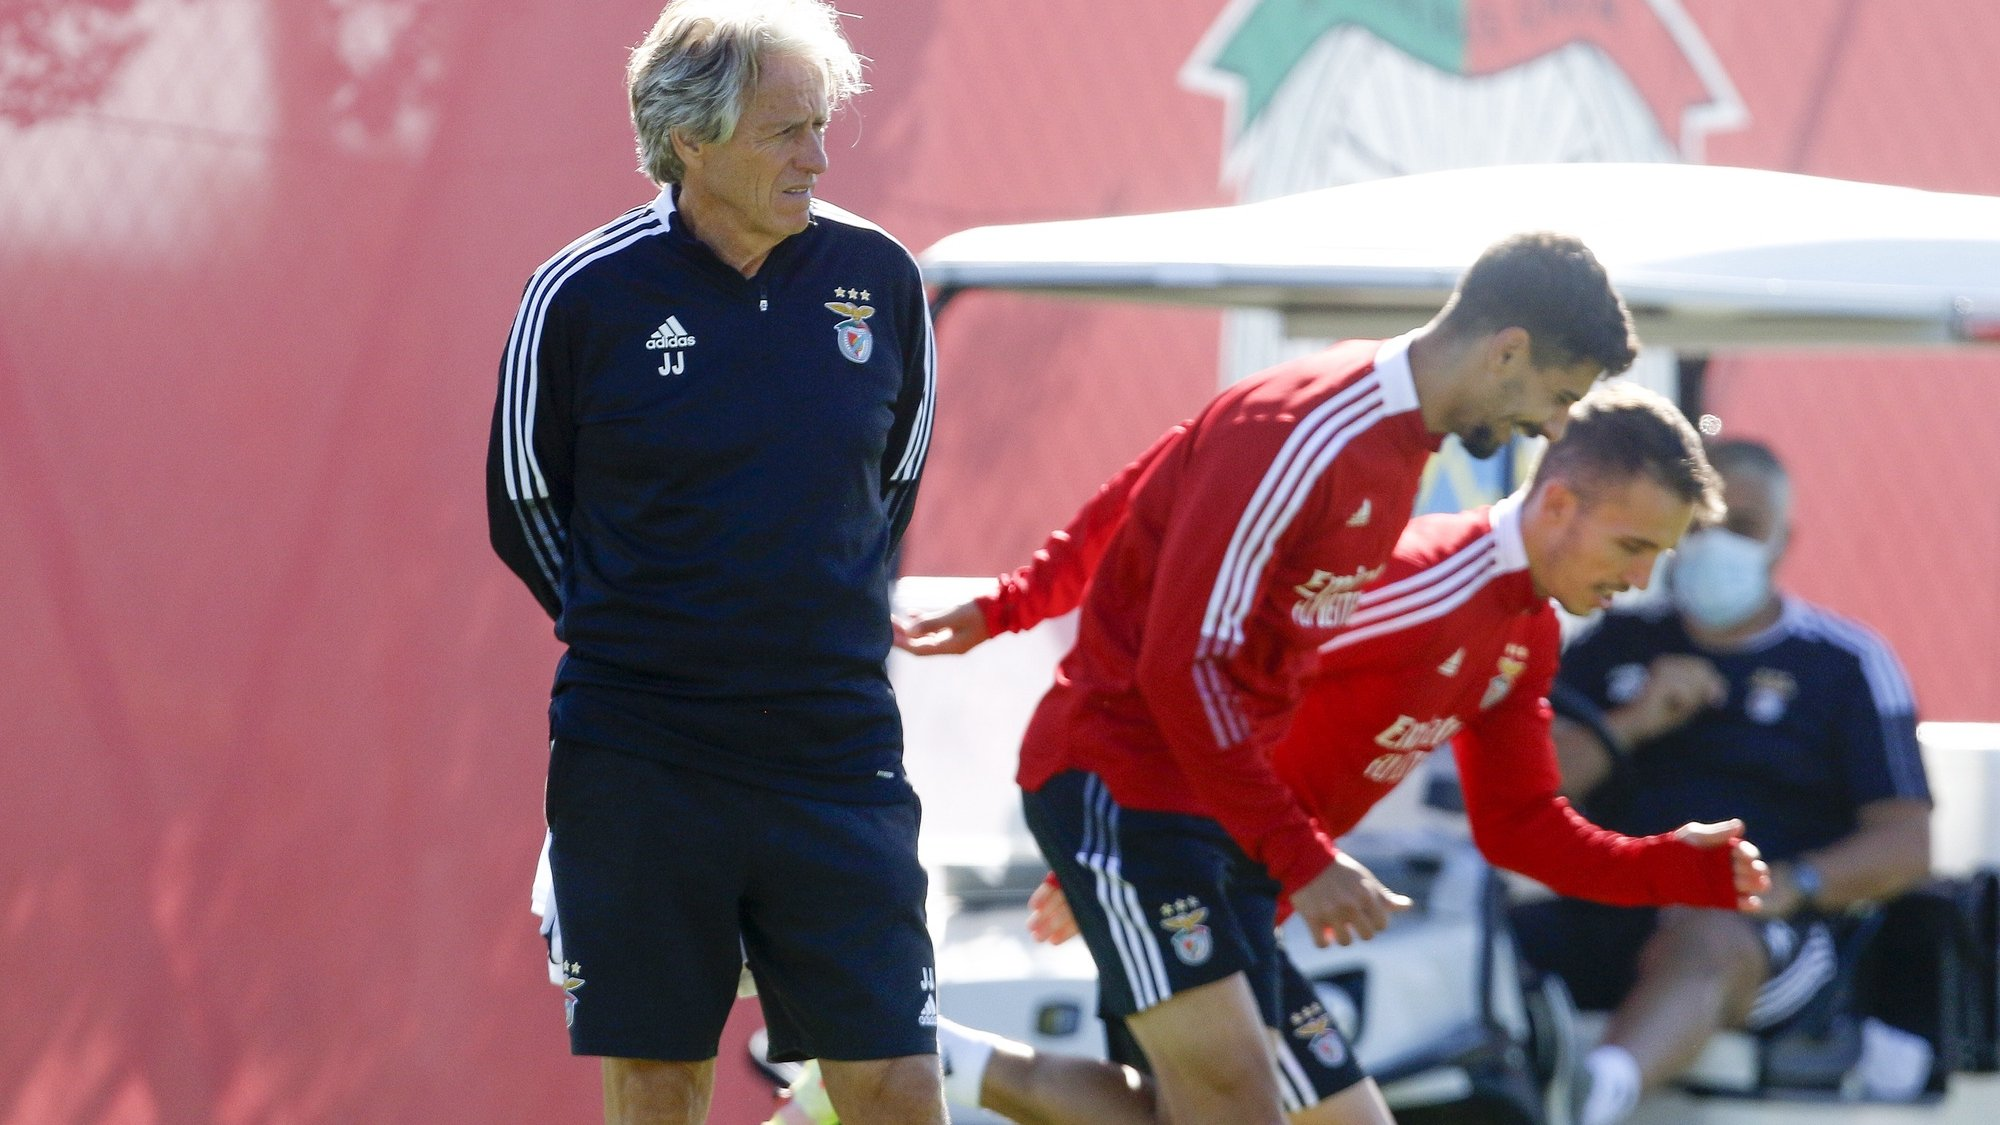 epa09492621 Benfica head coach Jorge Jesus during a training session in Seixal, Portugal, 28 September 2021. Benfica will face FC Barcelona in Lisbon on 29 September 2021 in their UEFA Champions League group stage soccer match.  EPA/RUI MINDERICO